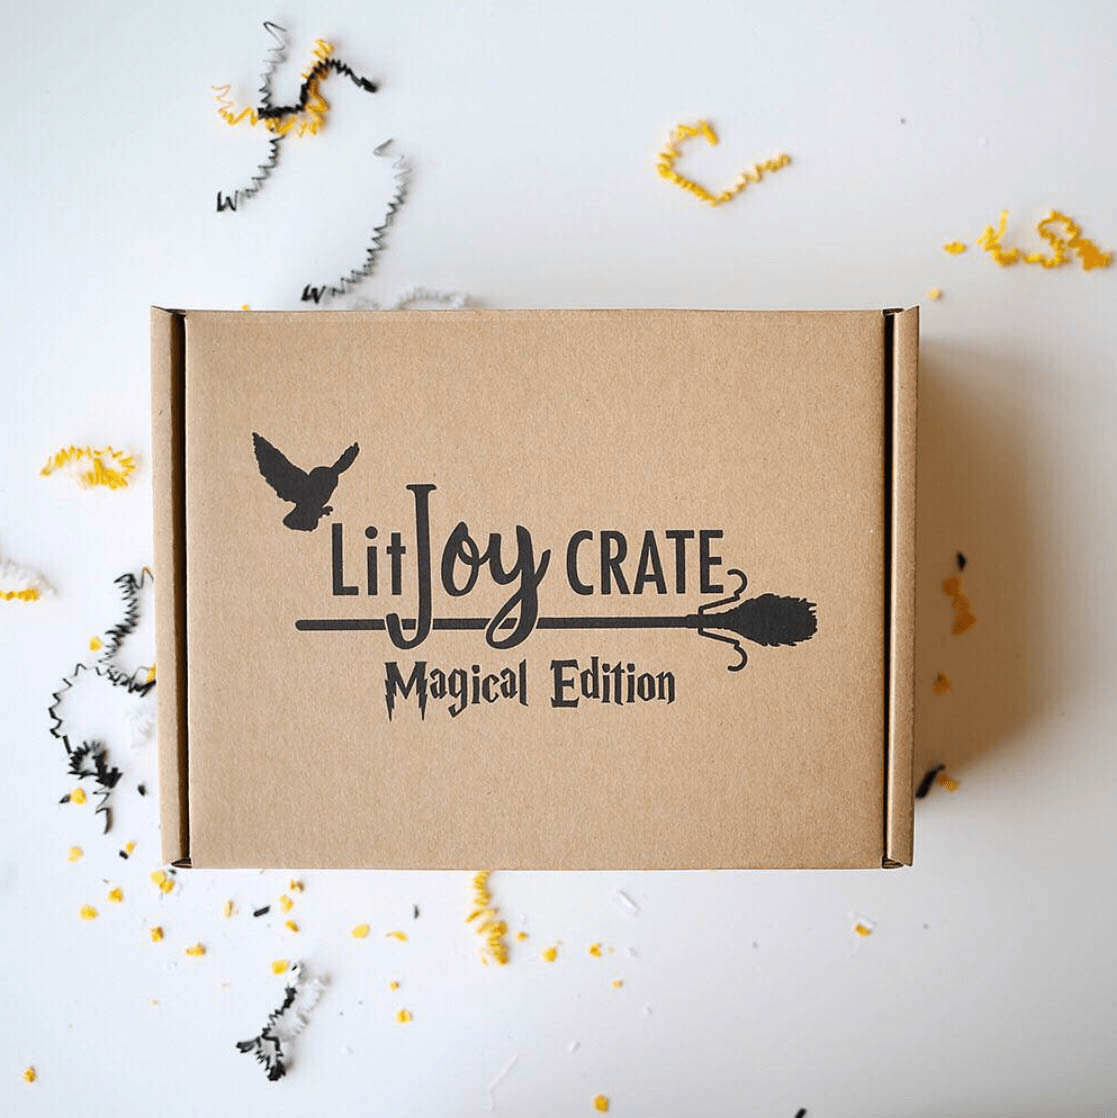 LitJoy Crate Magical Edition Year Six Box Coming Soon + Spoilers!